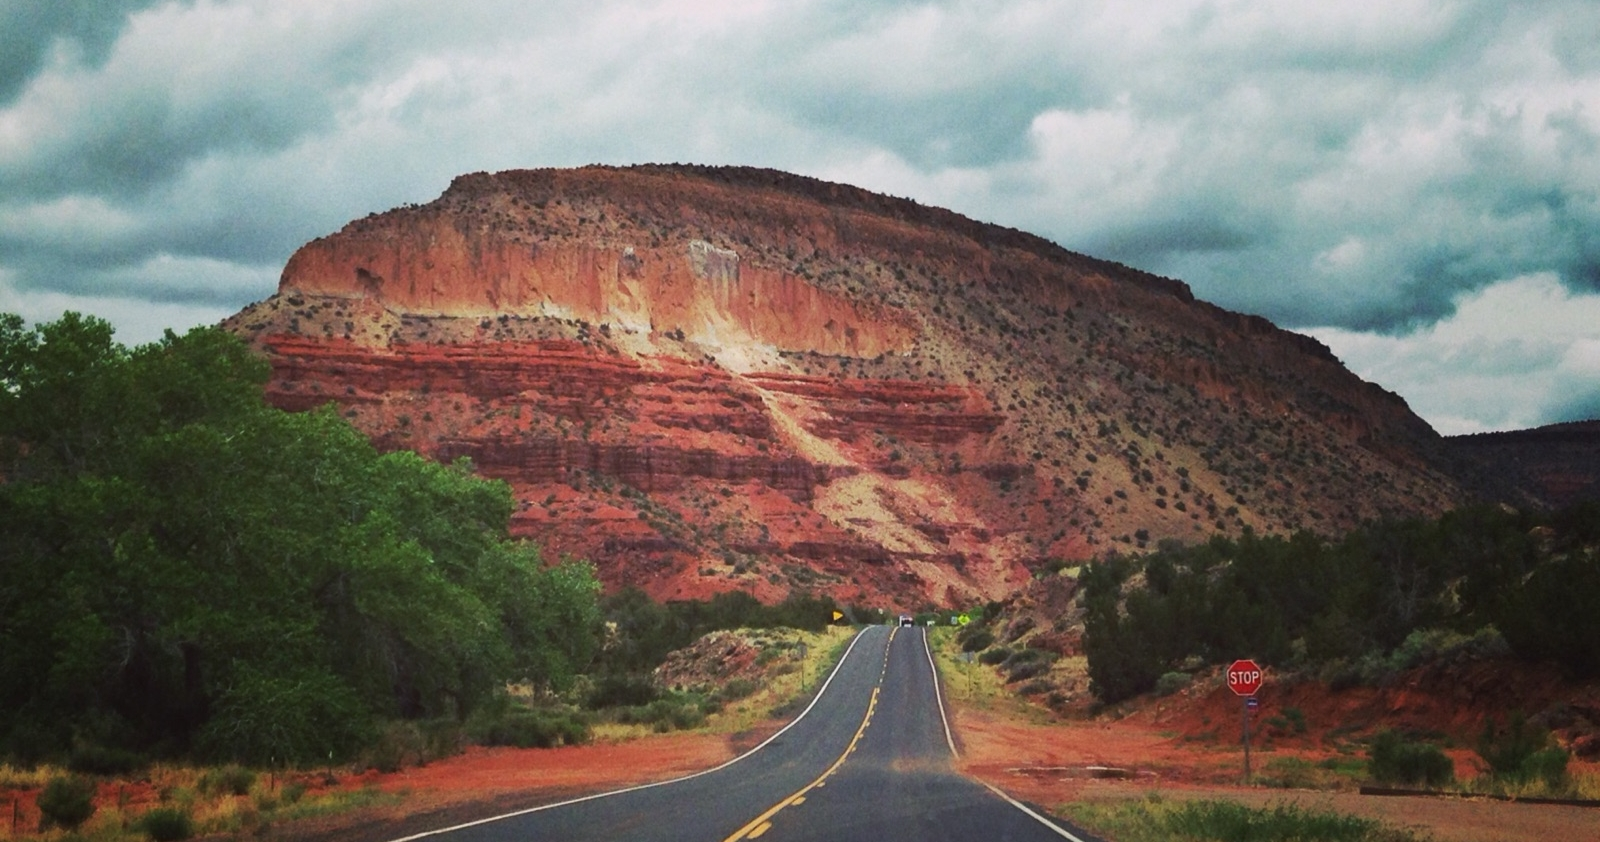 A view of Battleship Rock from NM 4, en route to Jemez Springs // Photo by Kerry M. Halasz